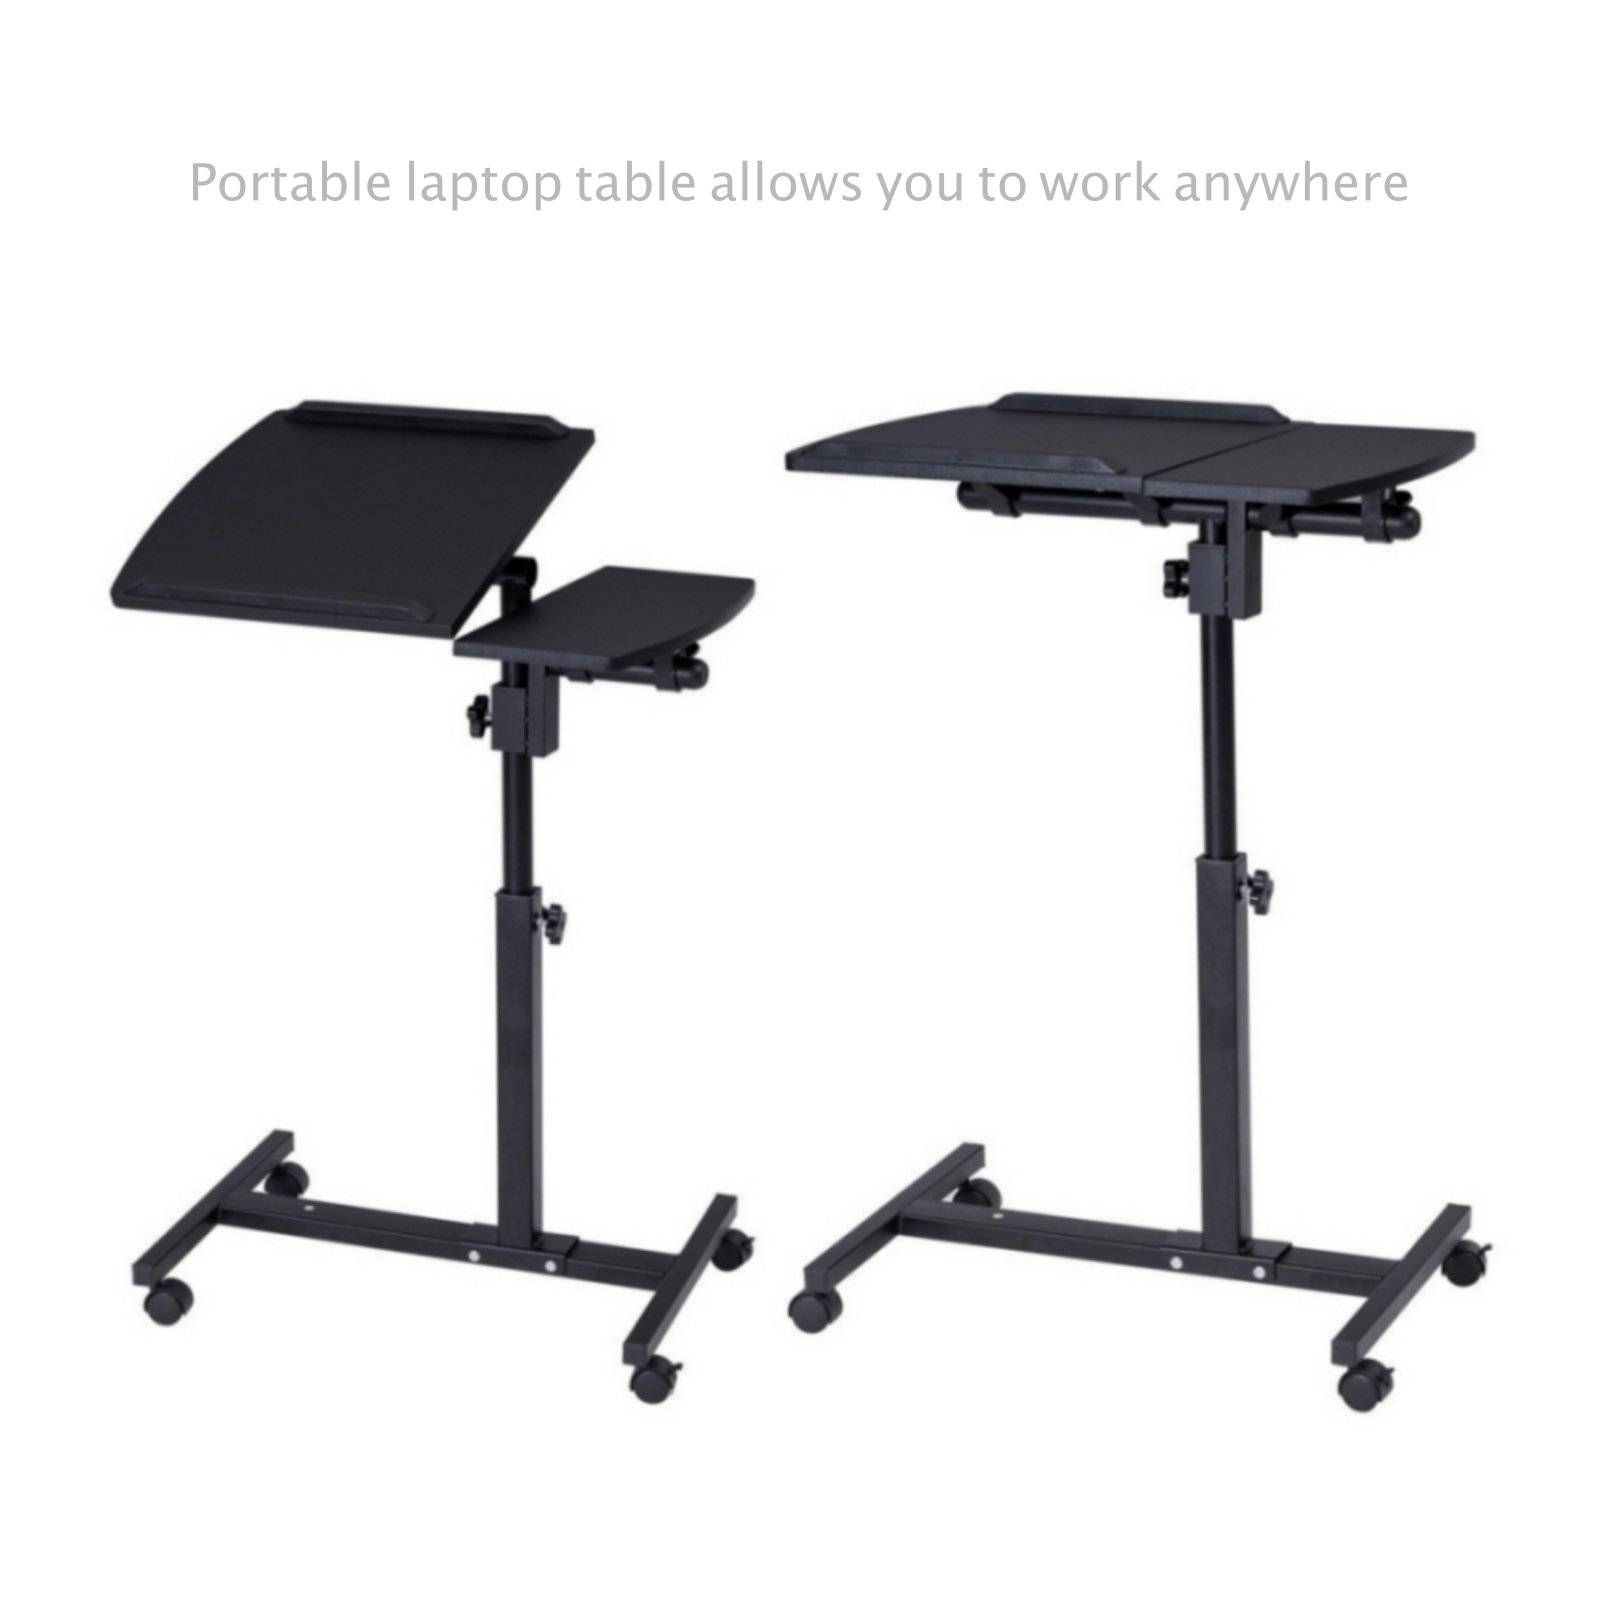 Laptop Notebook Smartphone Table Stand Portable Rolling Cart Height Adjustable Living Room Tray School Home Office Furniture Black #1822